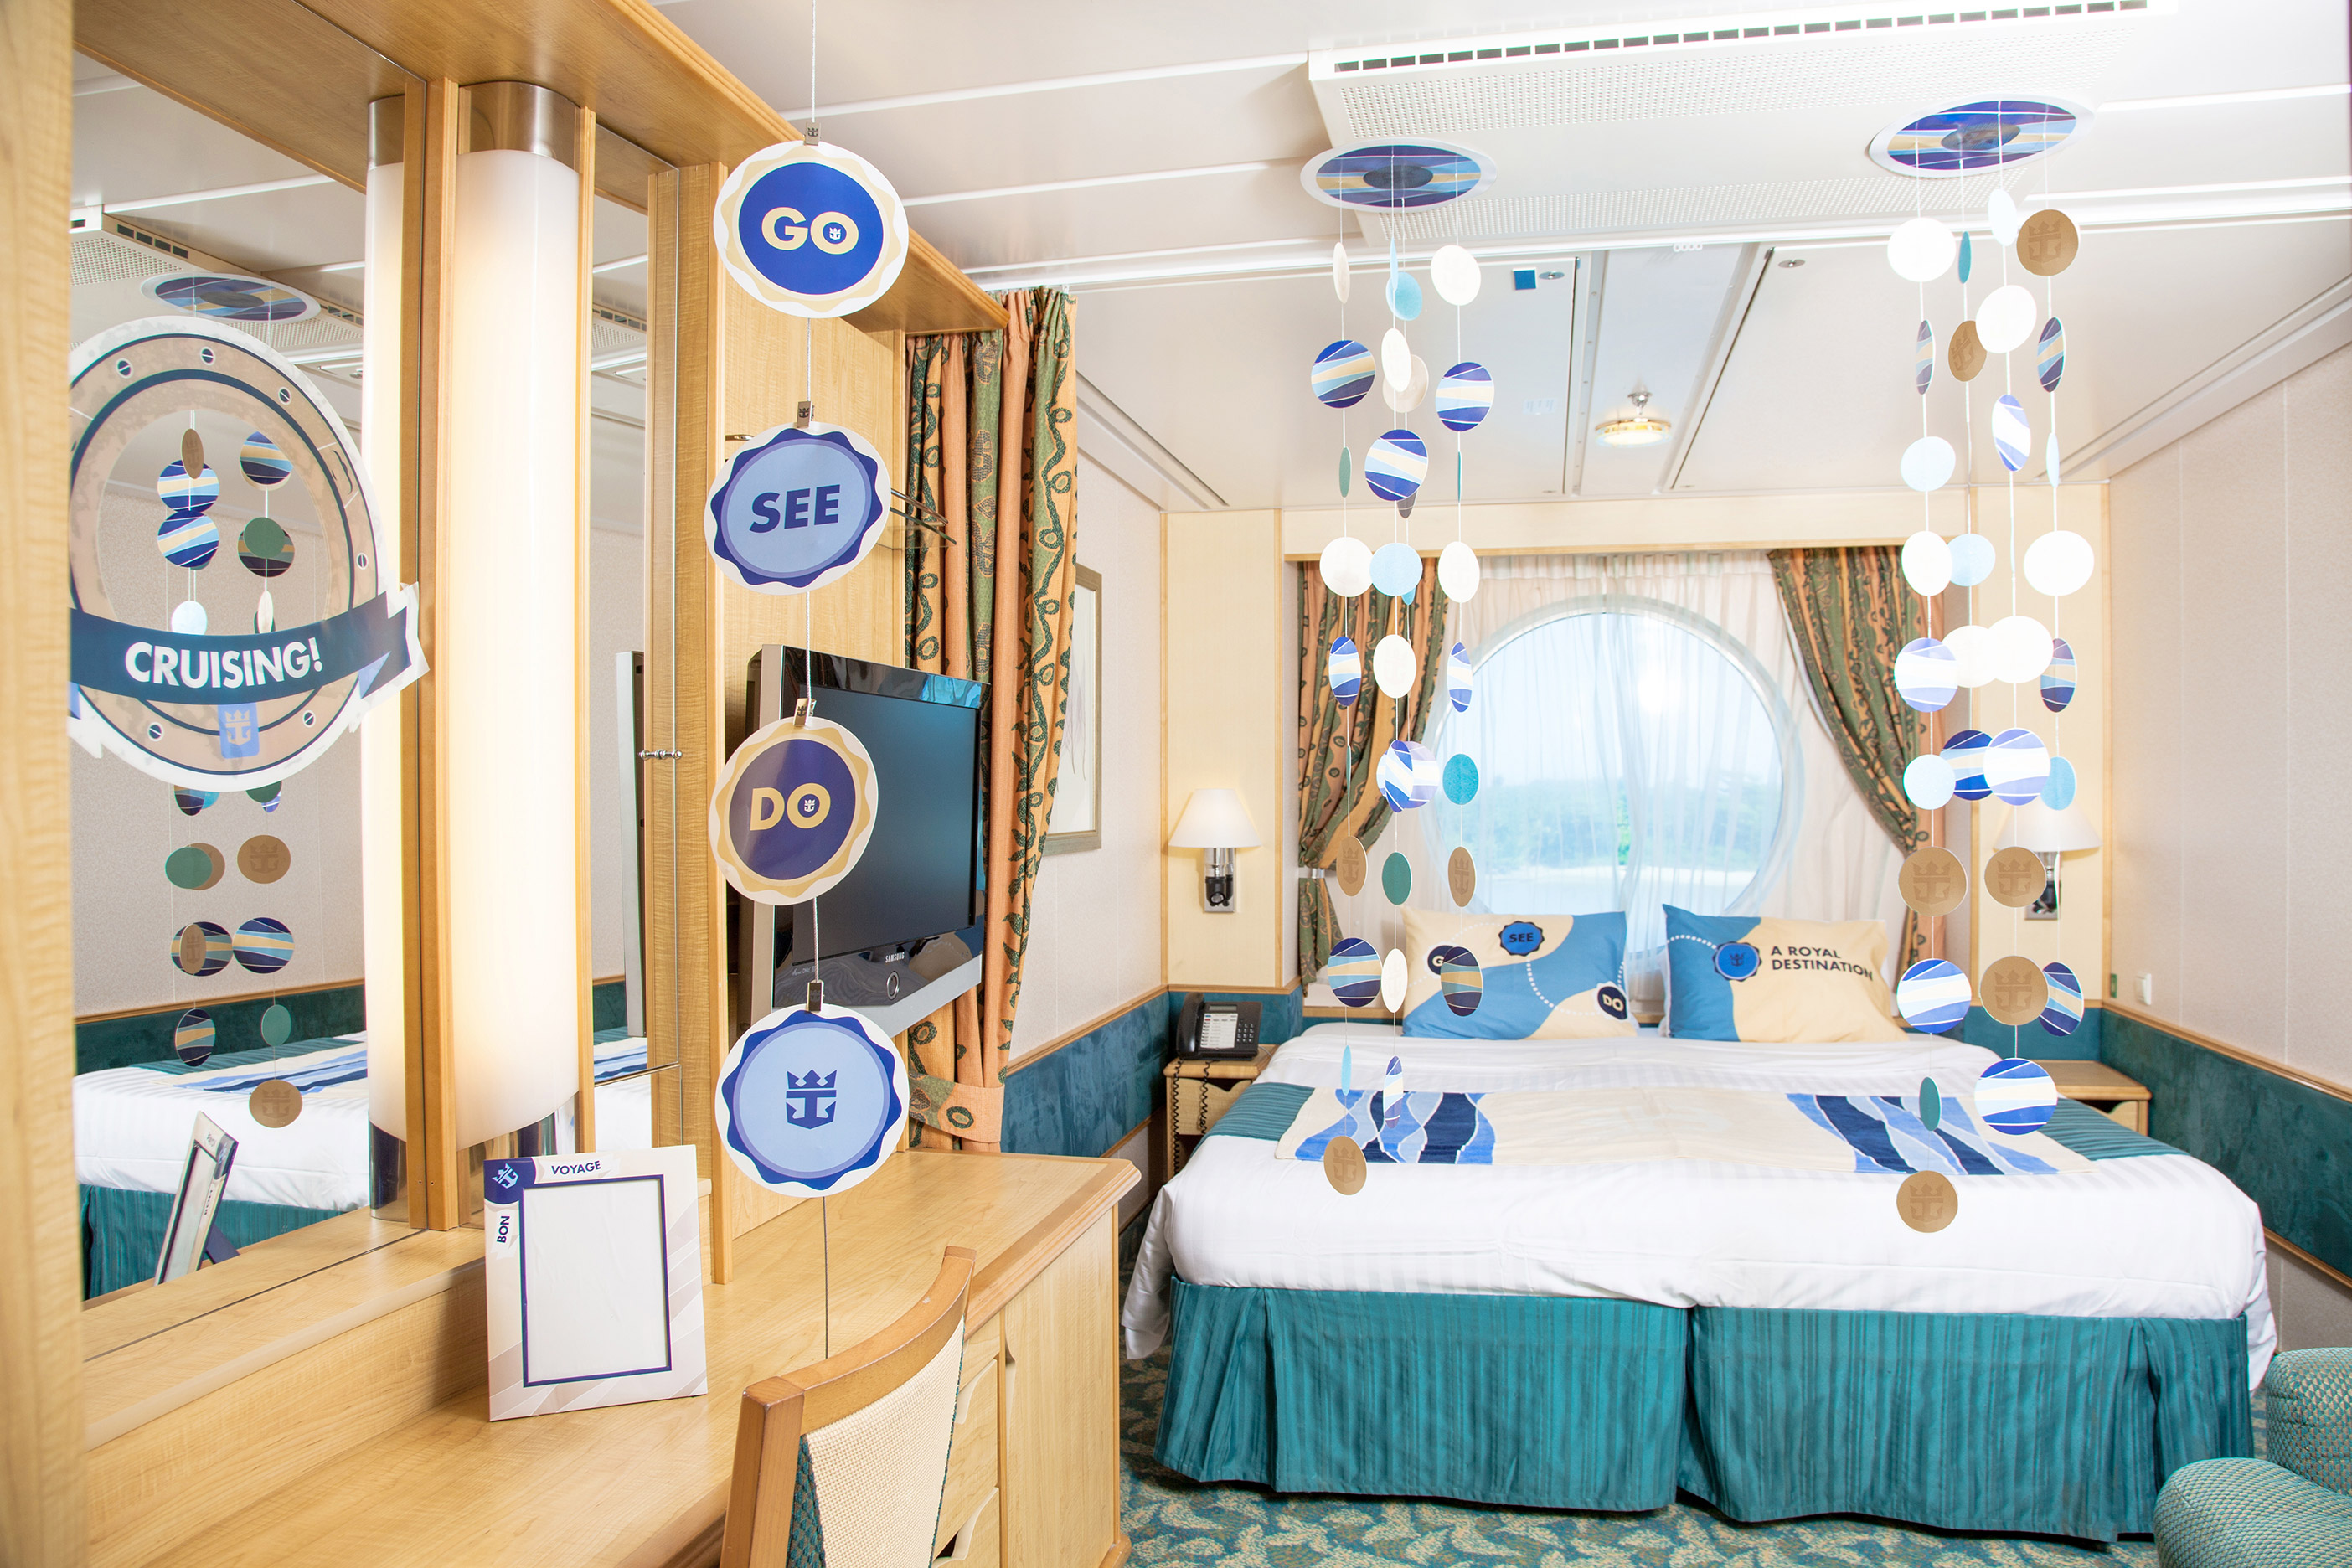 Bon voyage room d cor deluxe for Sejour design decoration